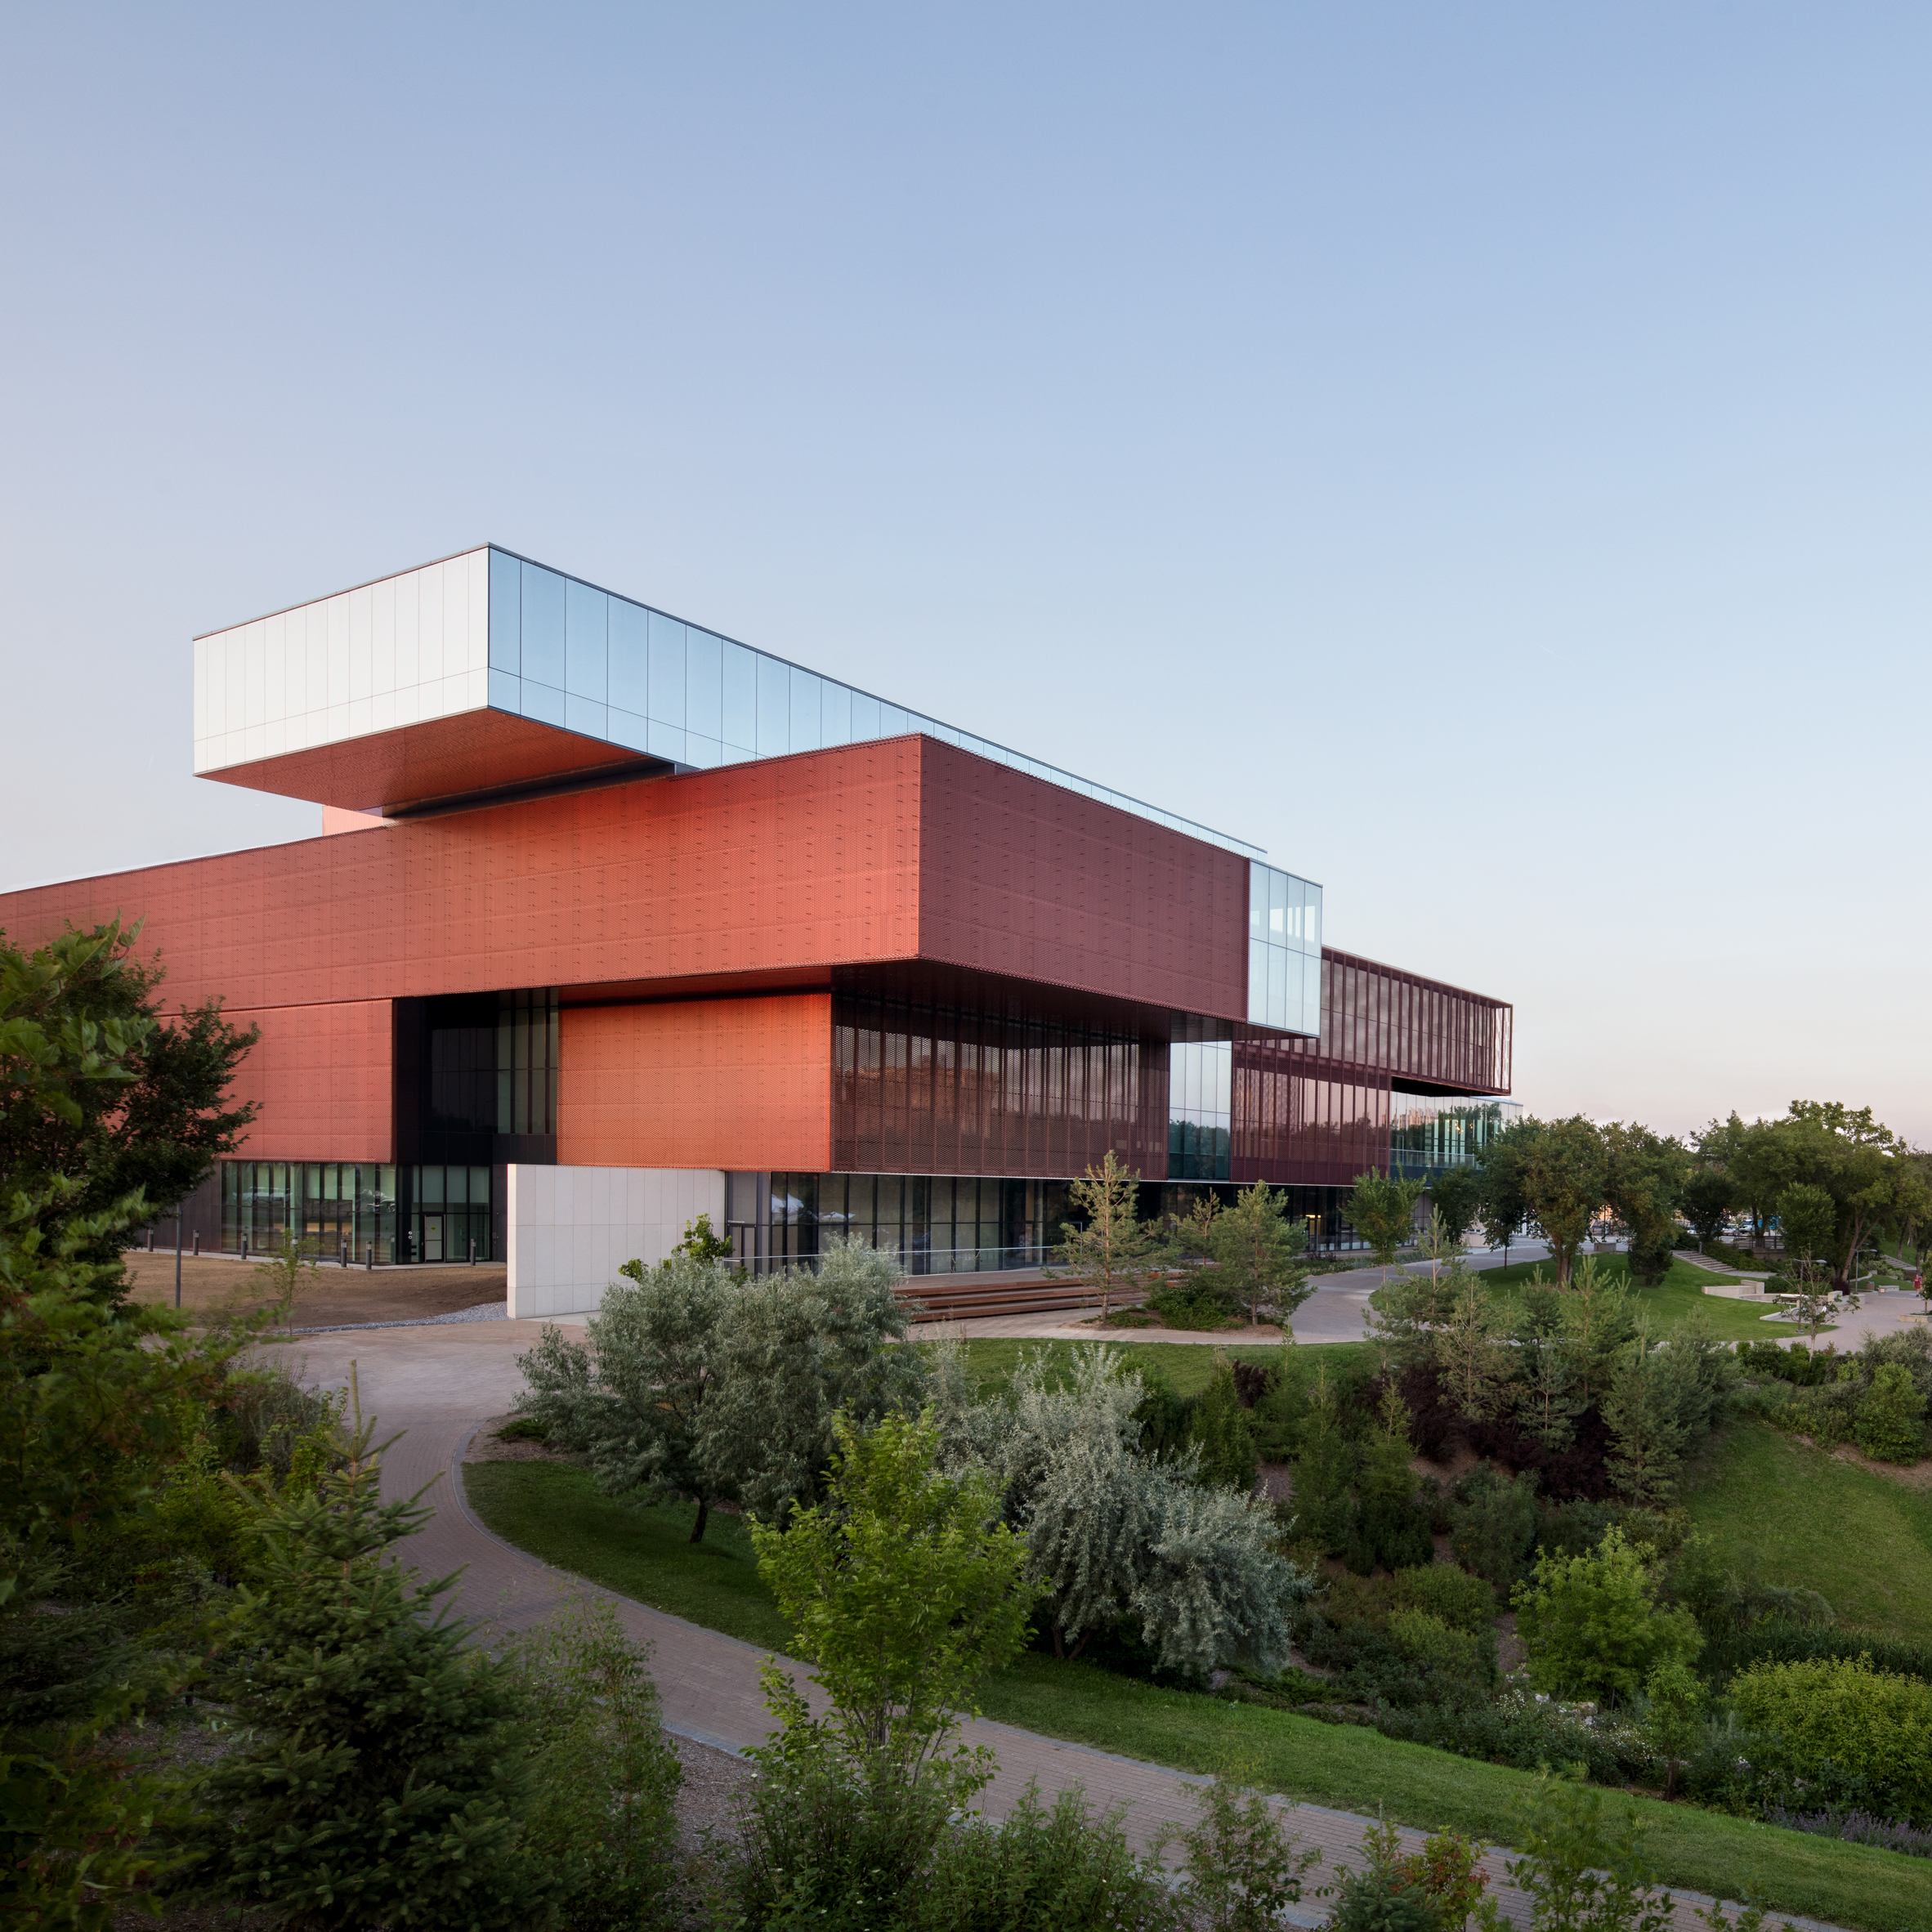 Remai Modern art museum is a stack of metal and glass blocks in the  Canadian Prairies